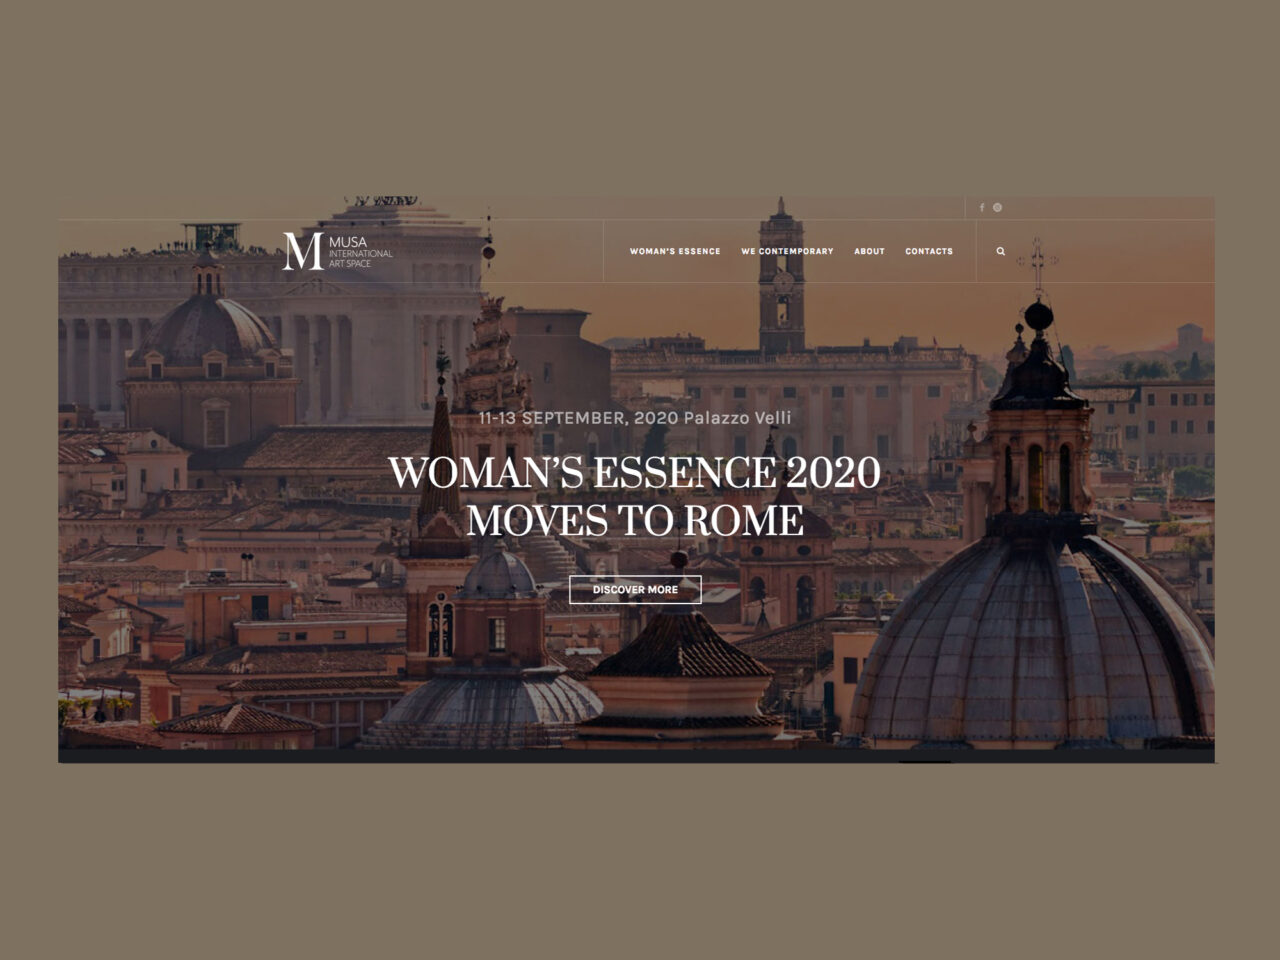 MUSA International Art Space, WOMAN'S ESSENCE SHOW 2020 in Collaboration with UNESCO